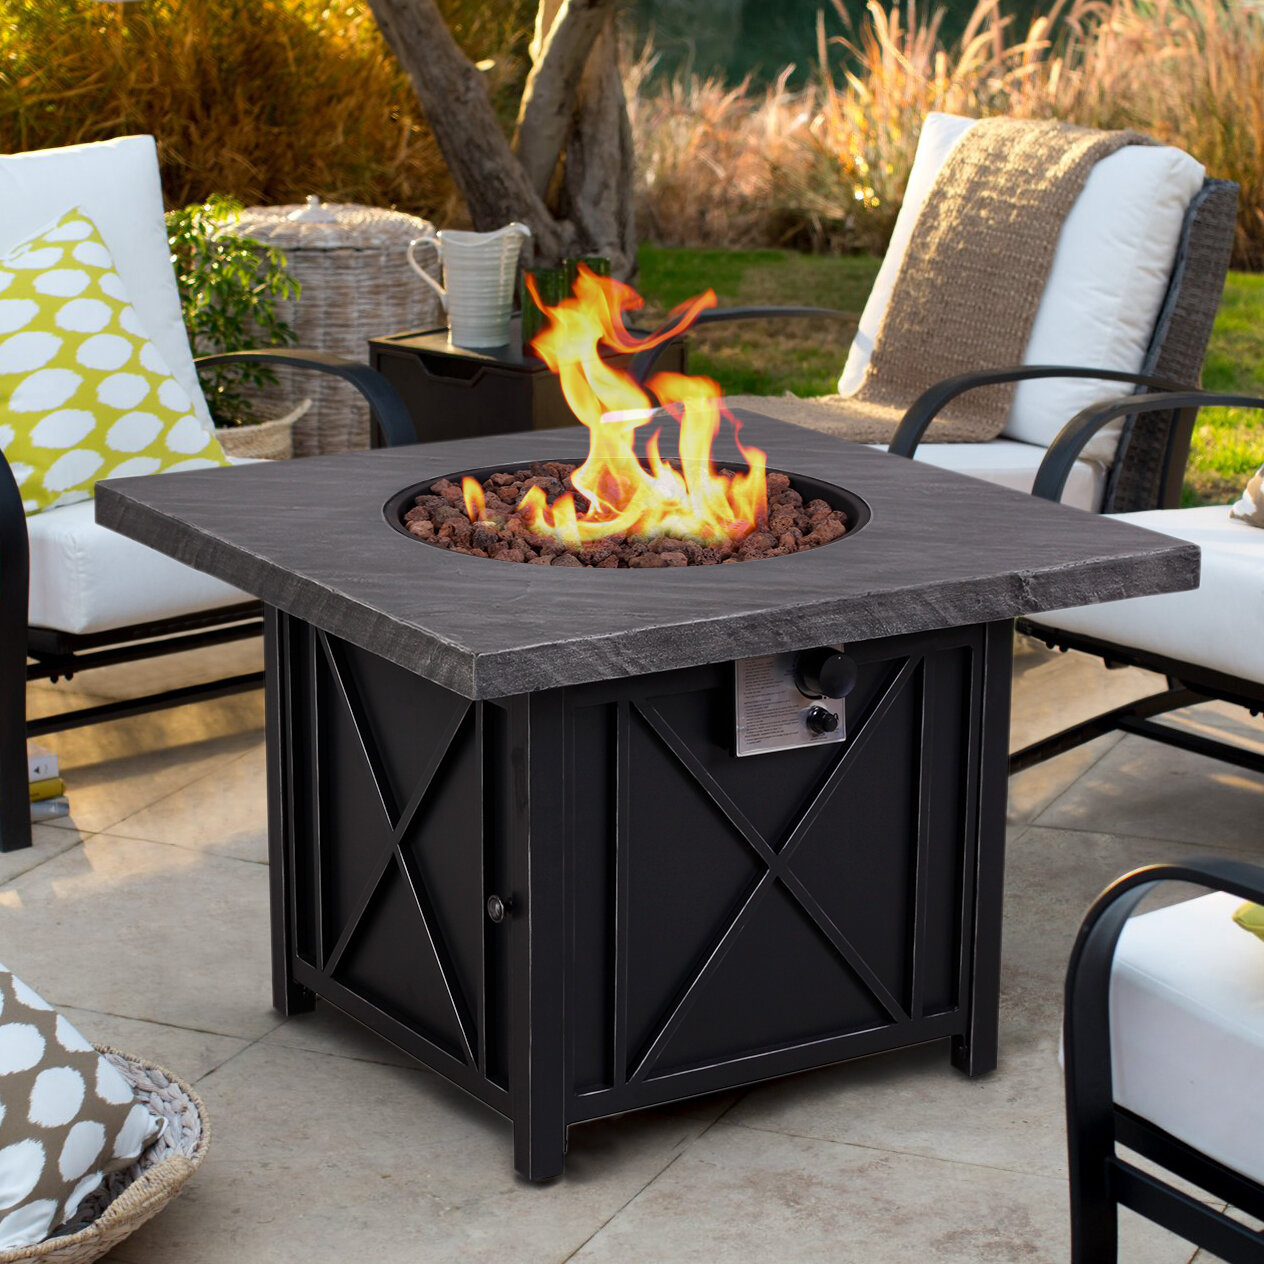 Arlmont Co Norris Steel Stone Propane Gas Fire Pit Table Reviews Wayfair